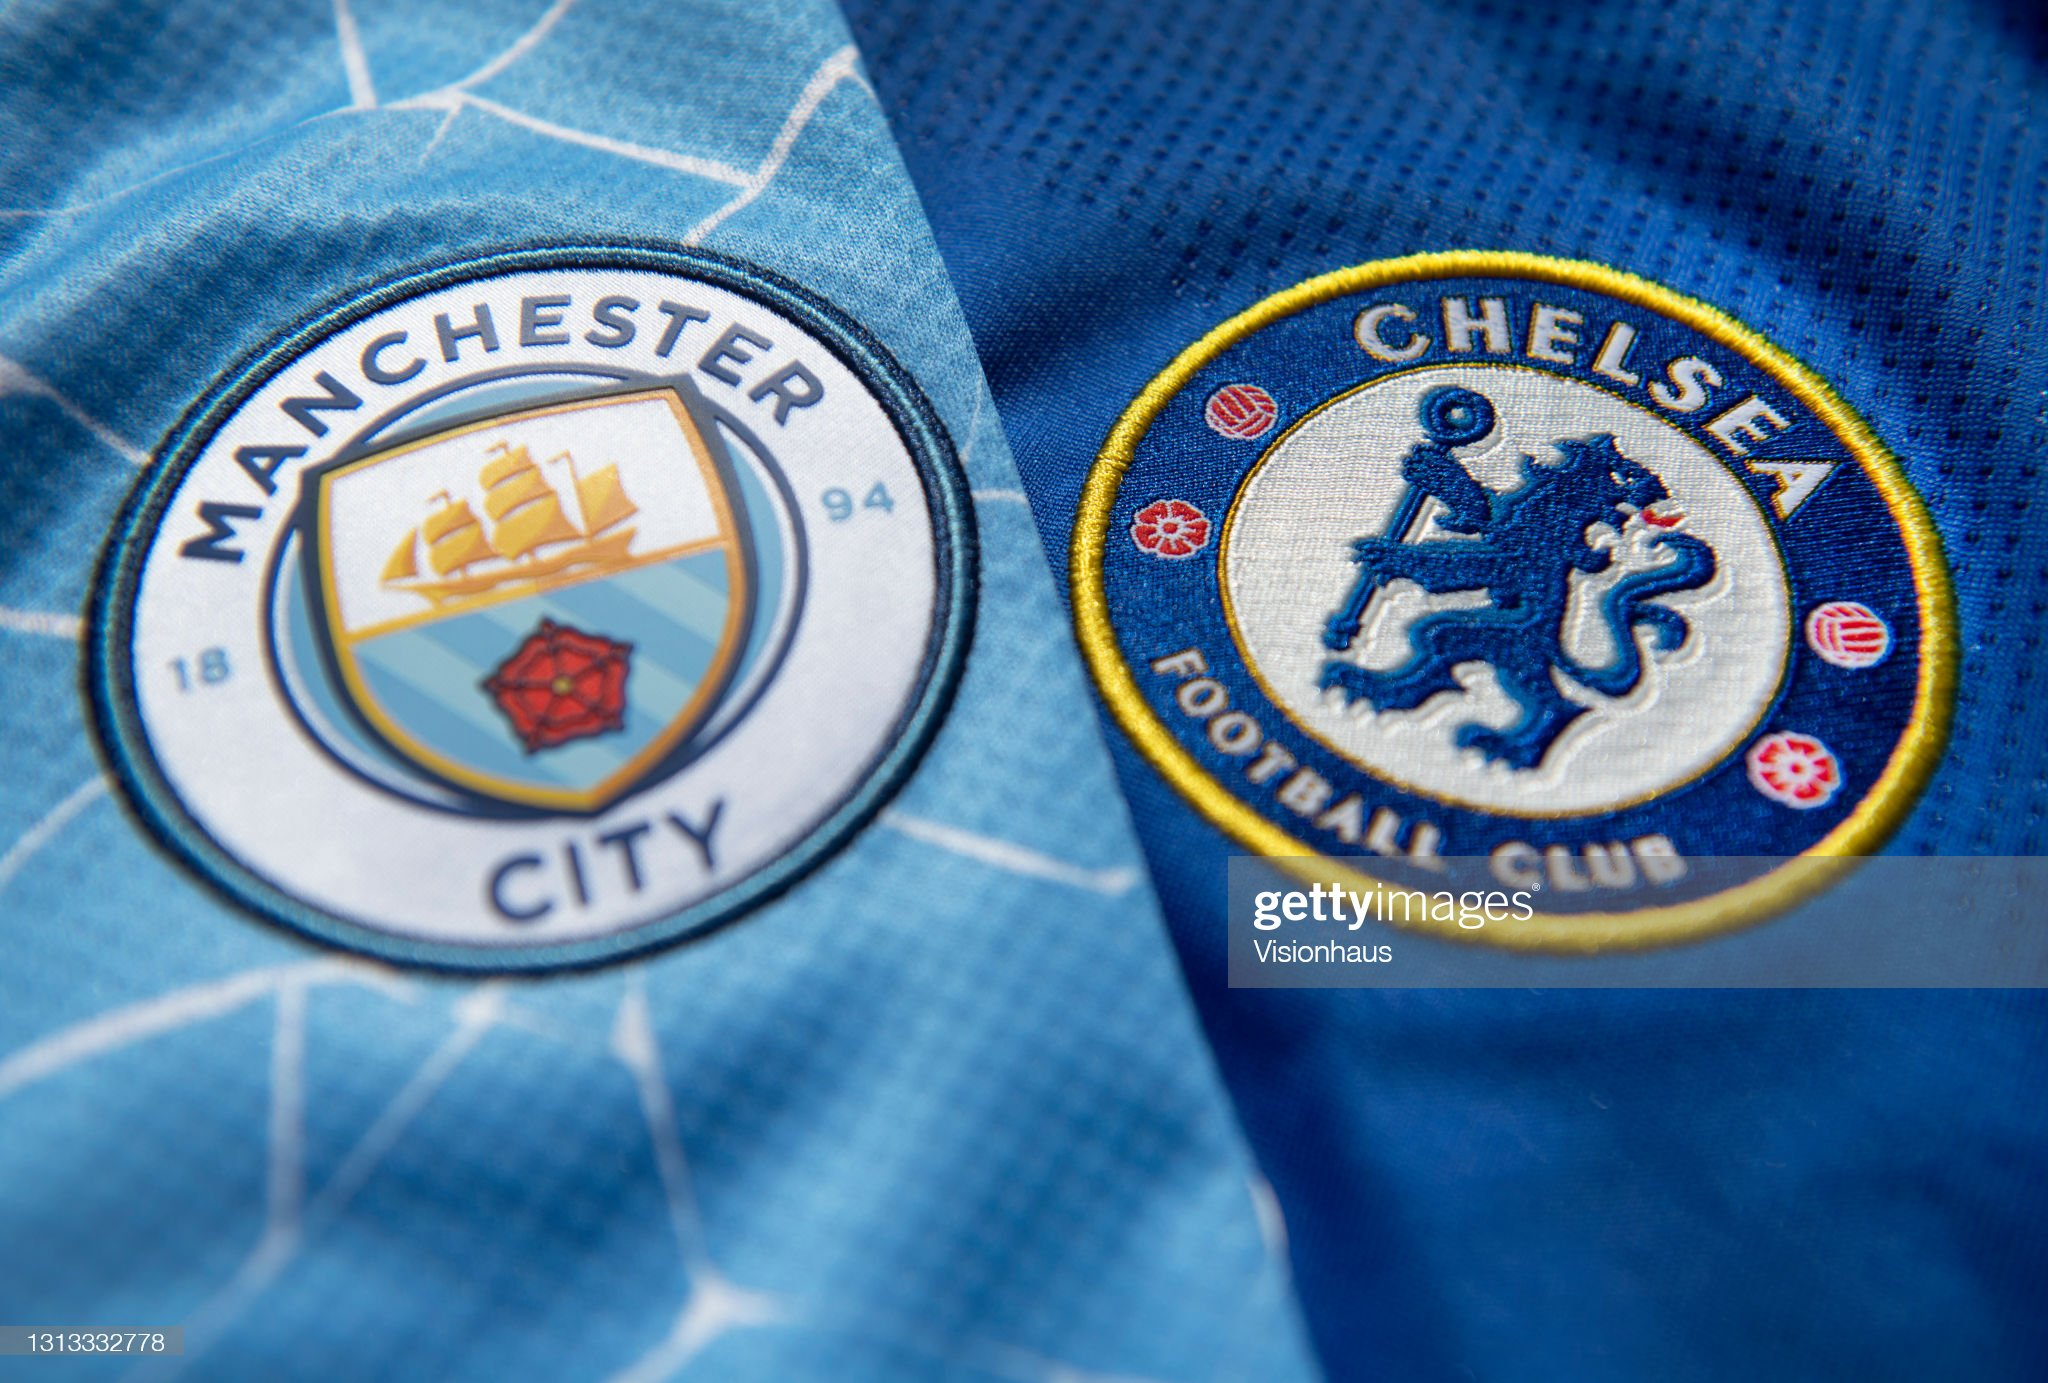 Manchester City vs Chelsea preview, prediction and odds